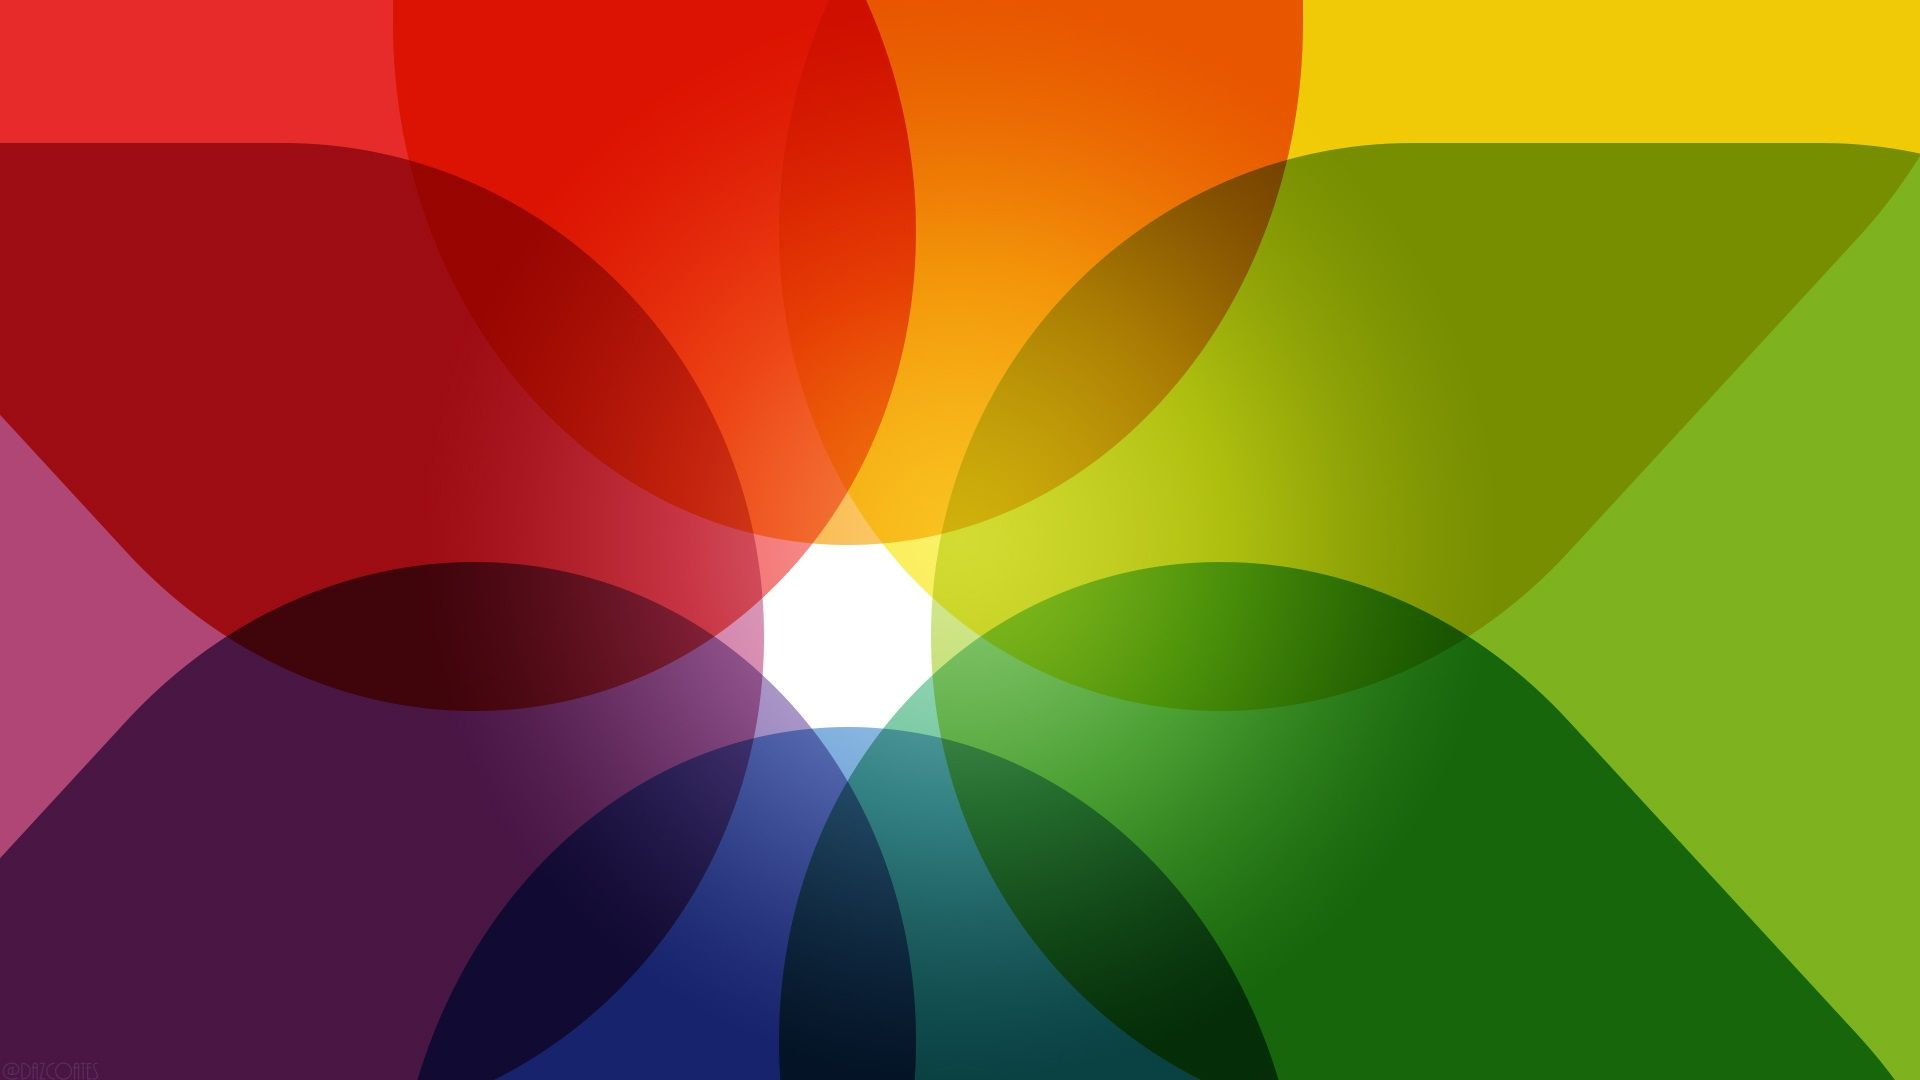 Rainbow abstract flower petals background rainbow for Rainbow petals